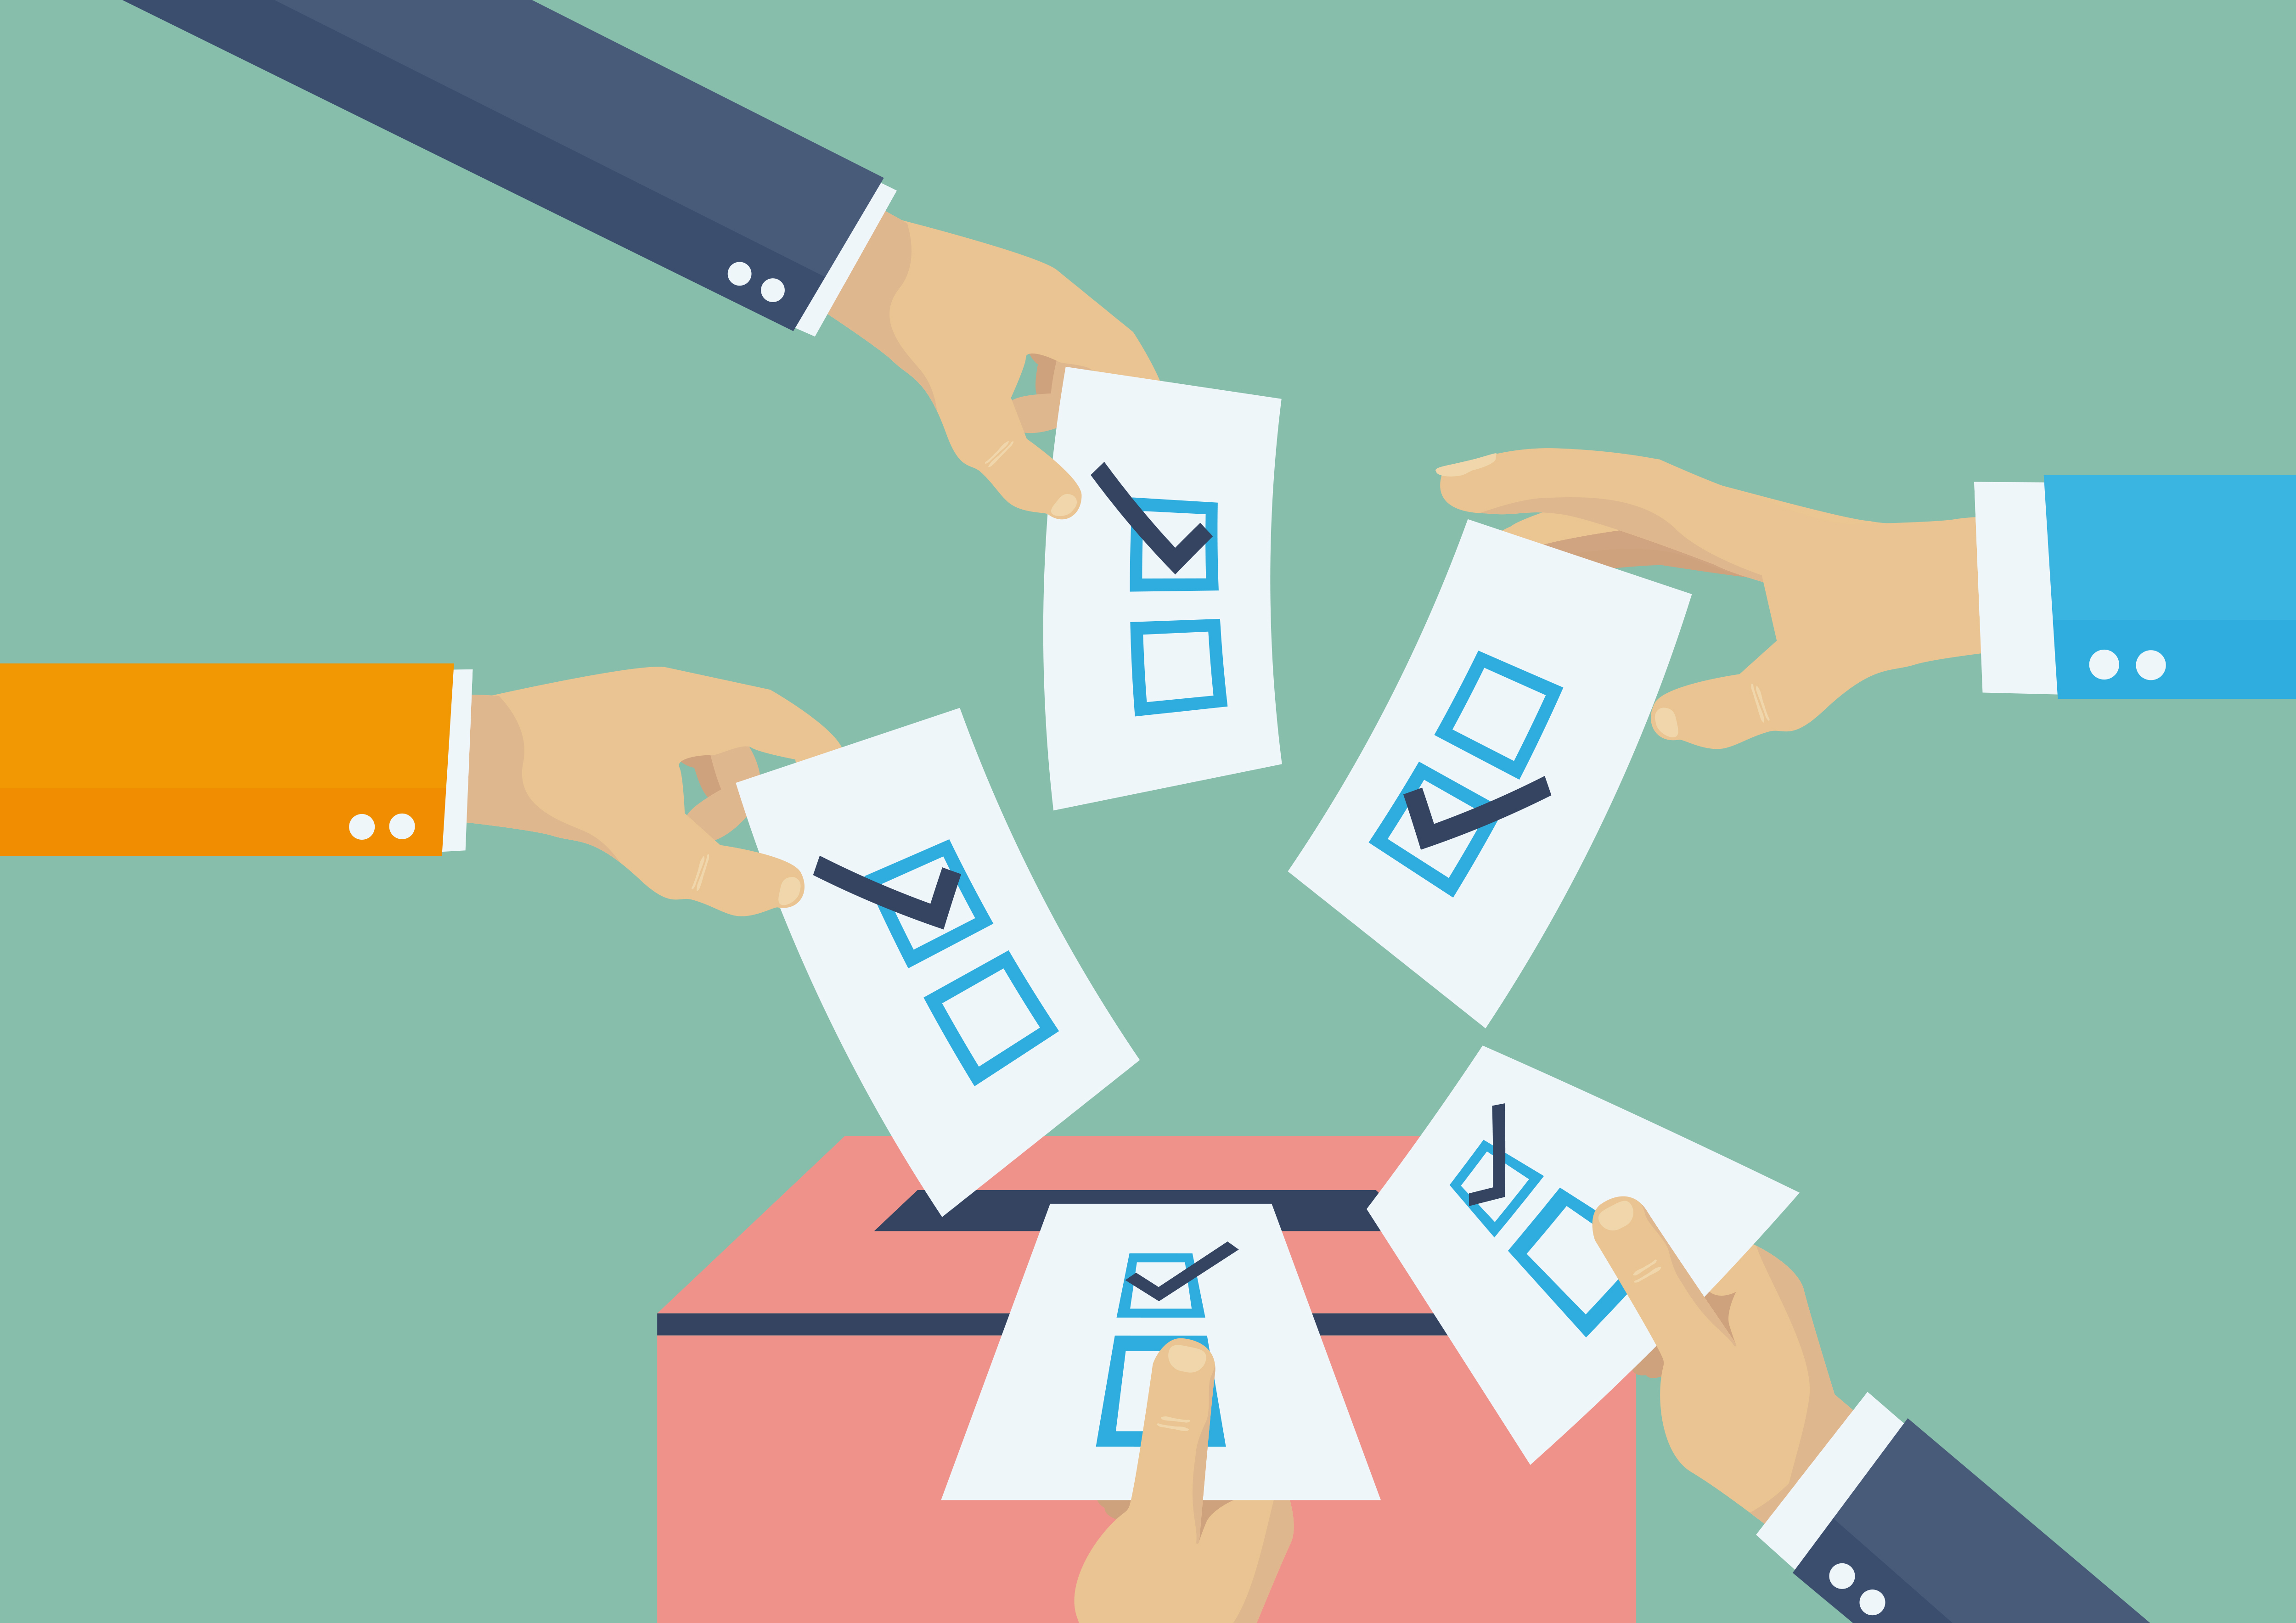 blogcertified-Why-do-Voting-Systems-Need-Blockchain